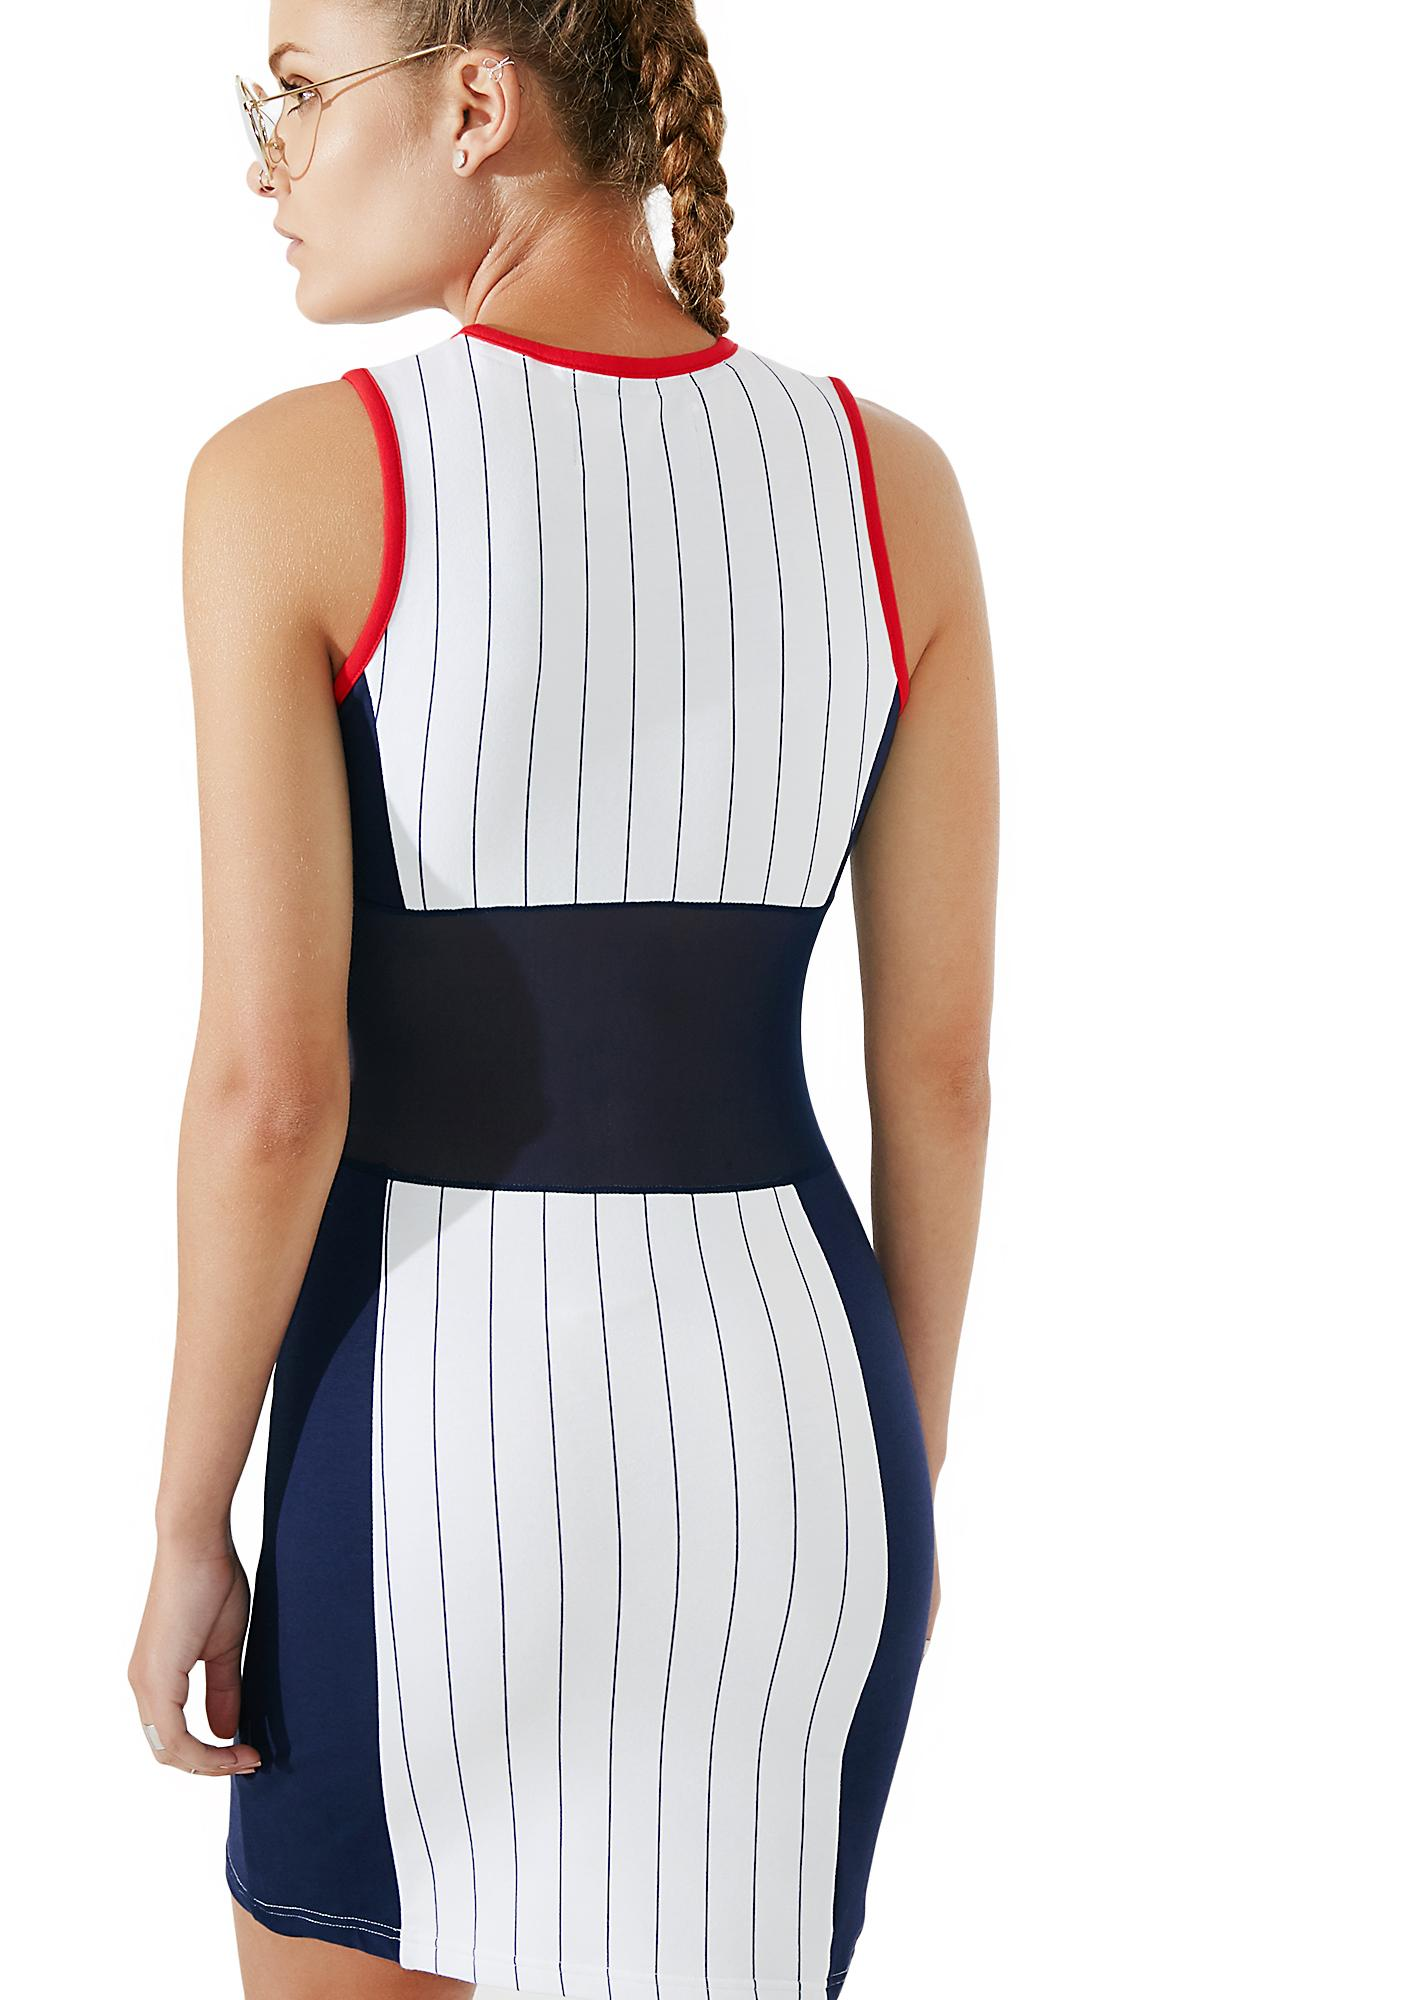 Fila Crystal Dress